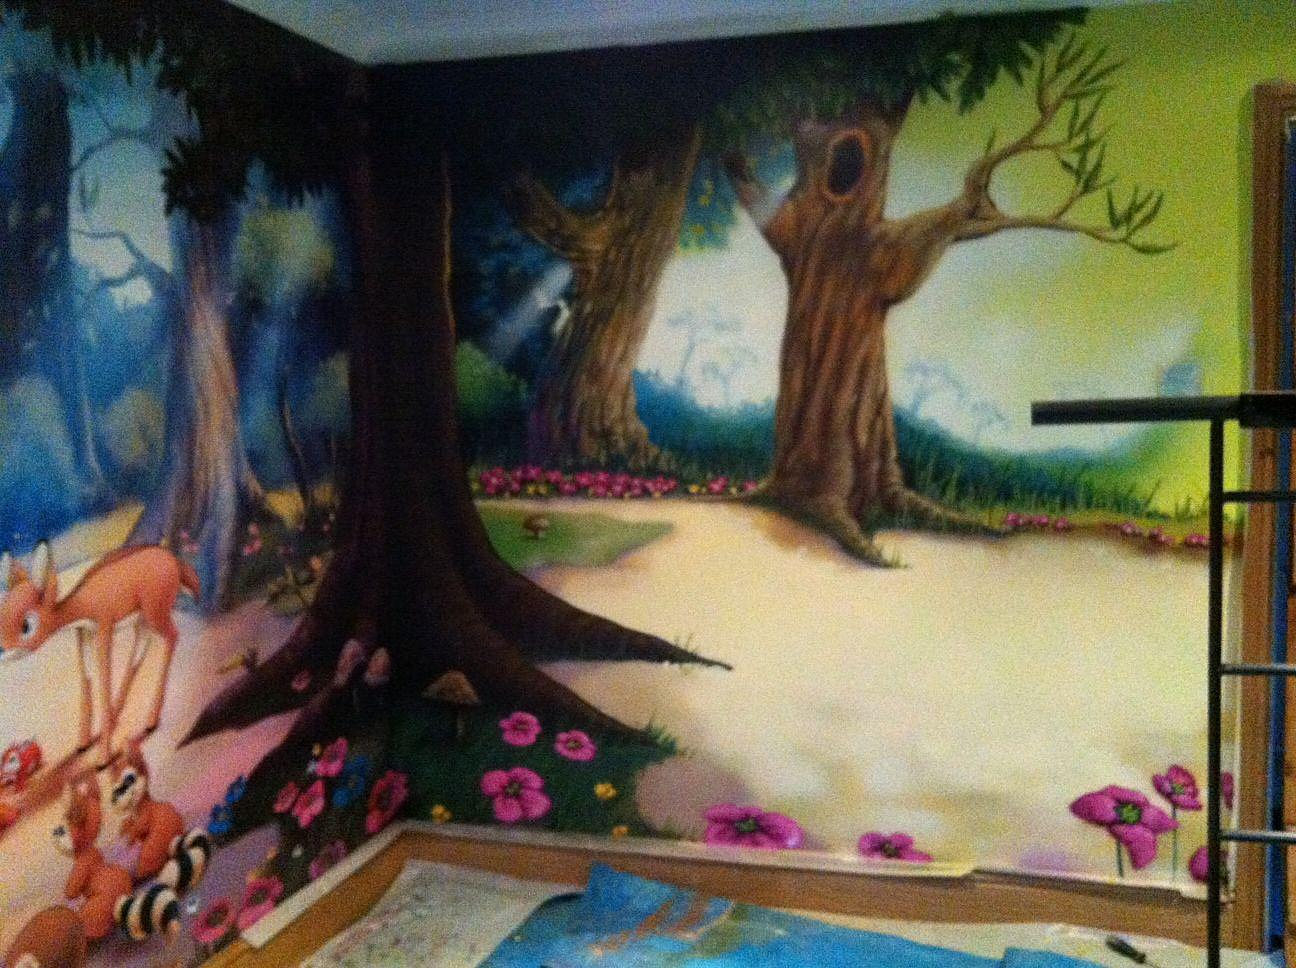 The mural artists enchanted forest mural for Enchanted forest mural